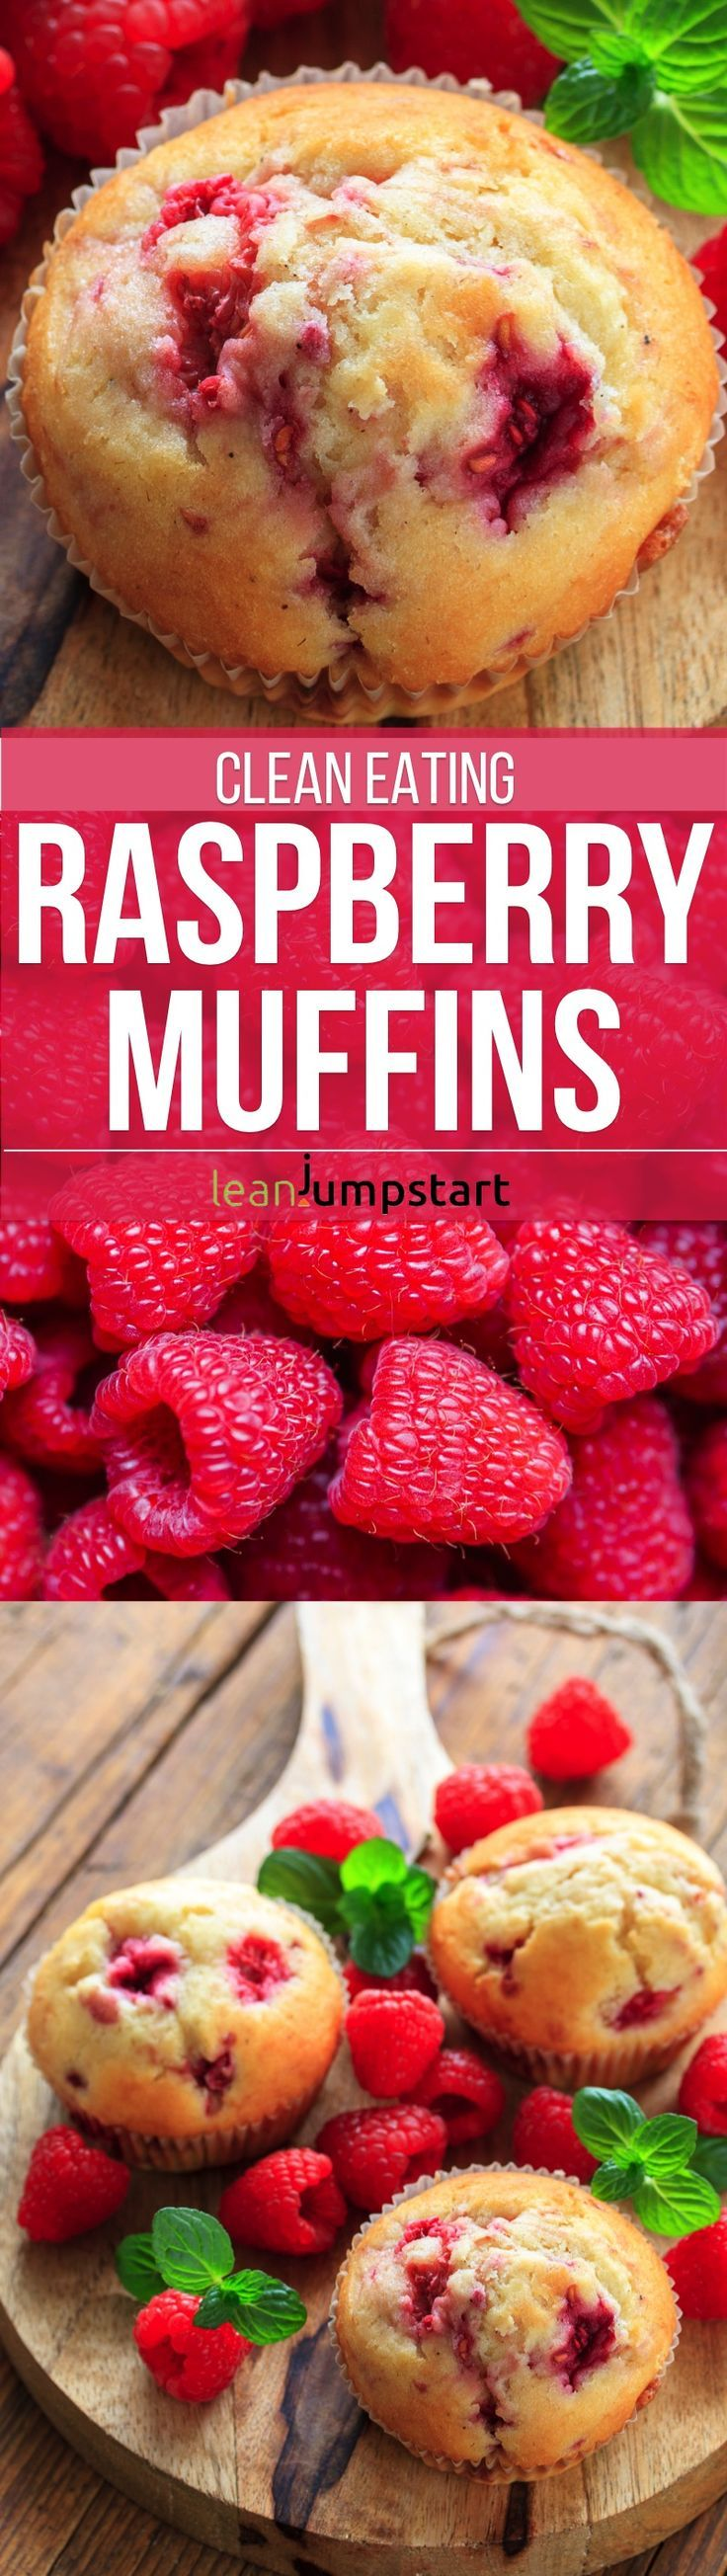 ... Muffins, Tarts, and Galettes! on Pinterest | Apple muffins, Mini